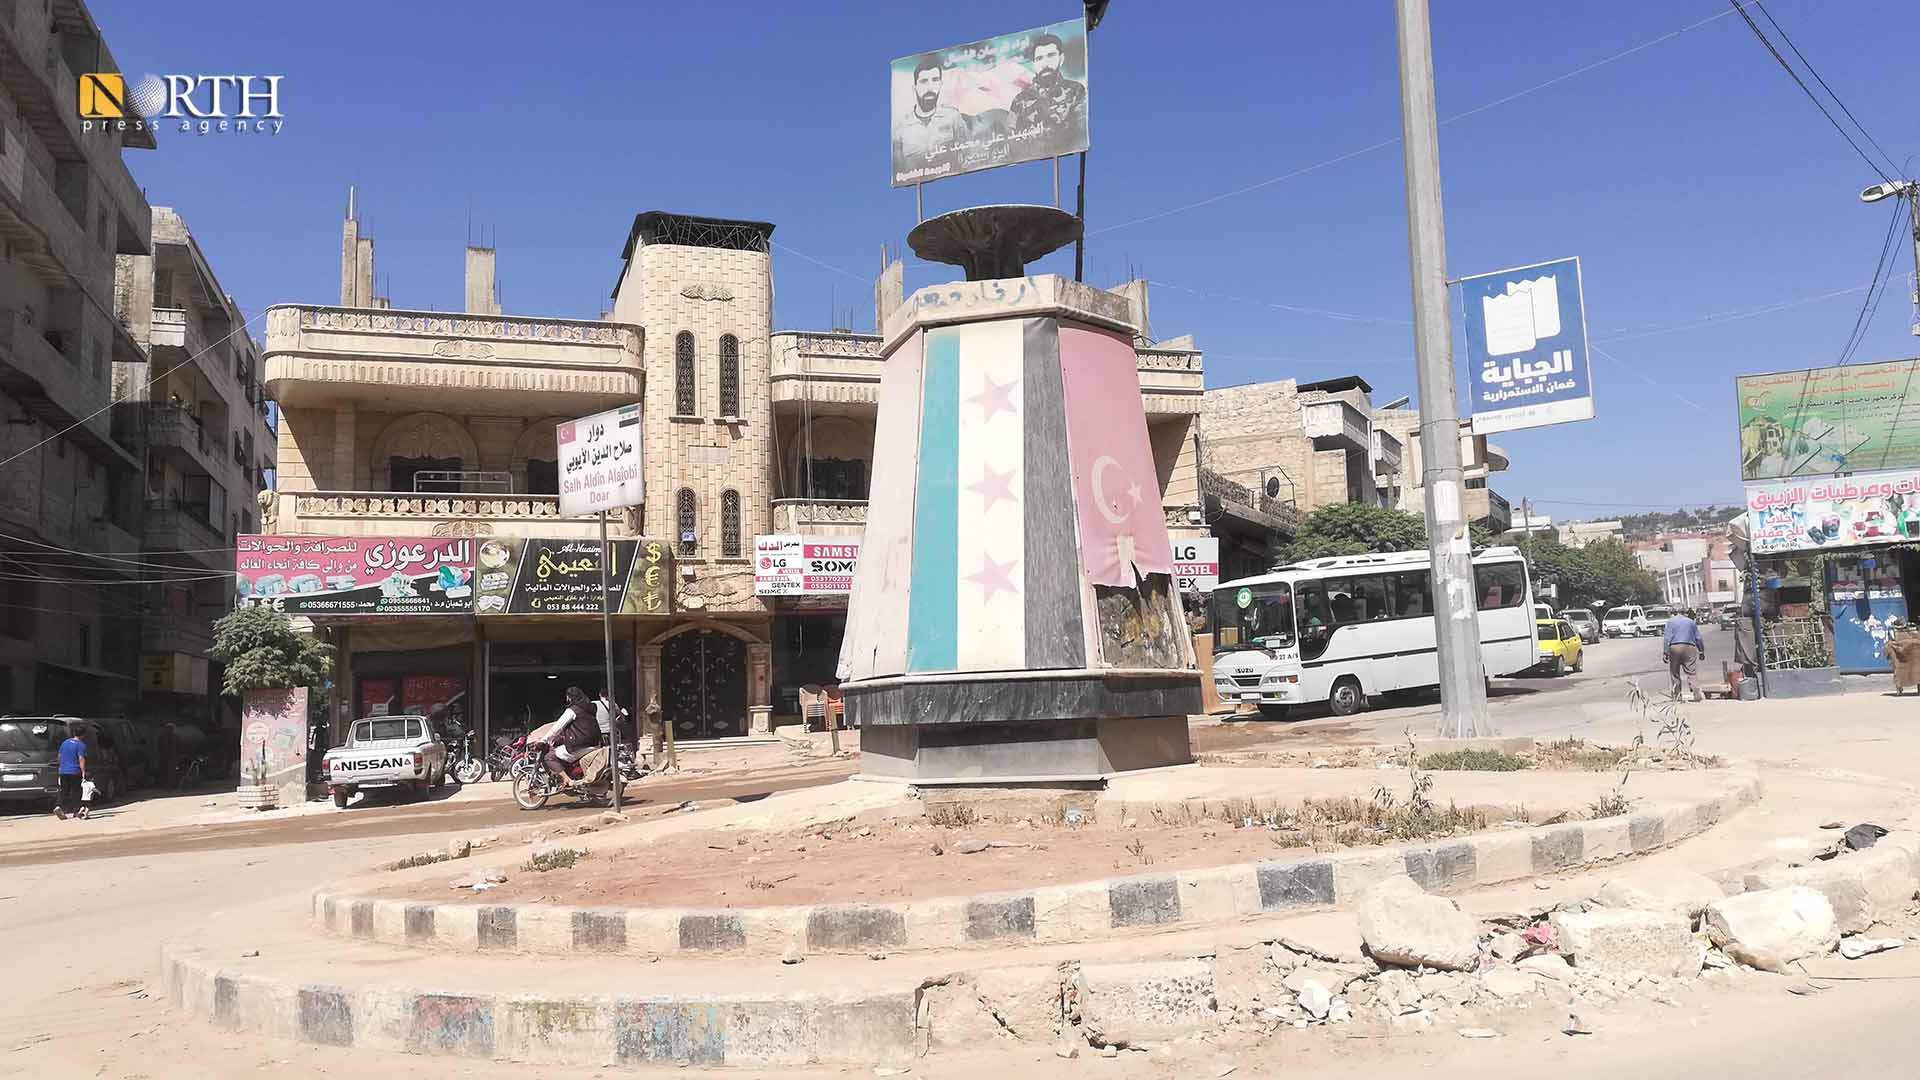 Newroz Roundabout in the middle of Afrin city – North Press